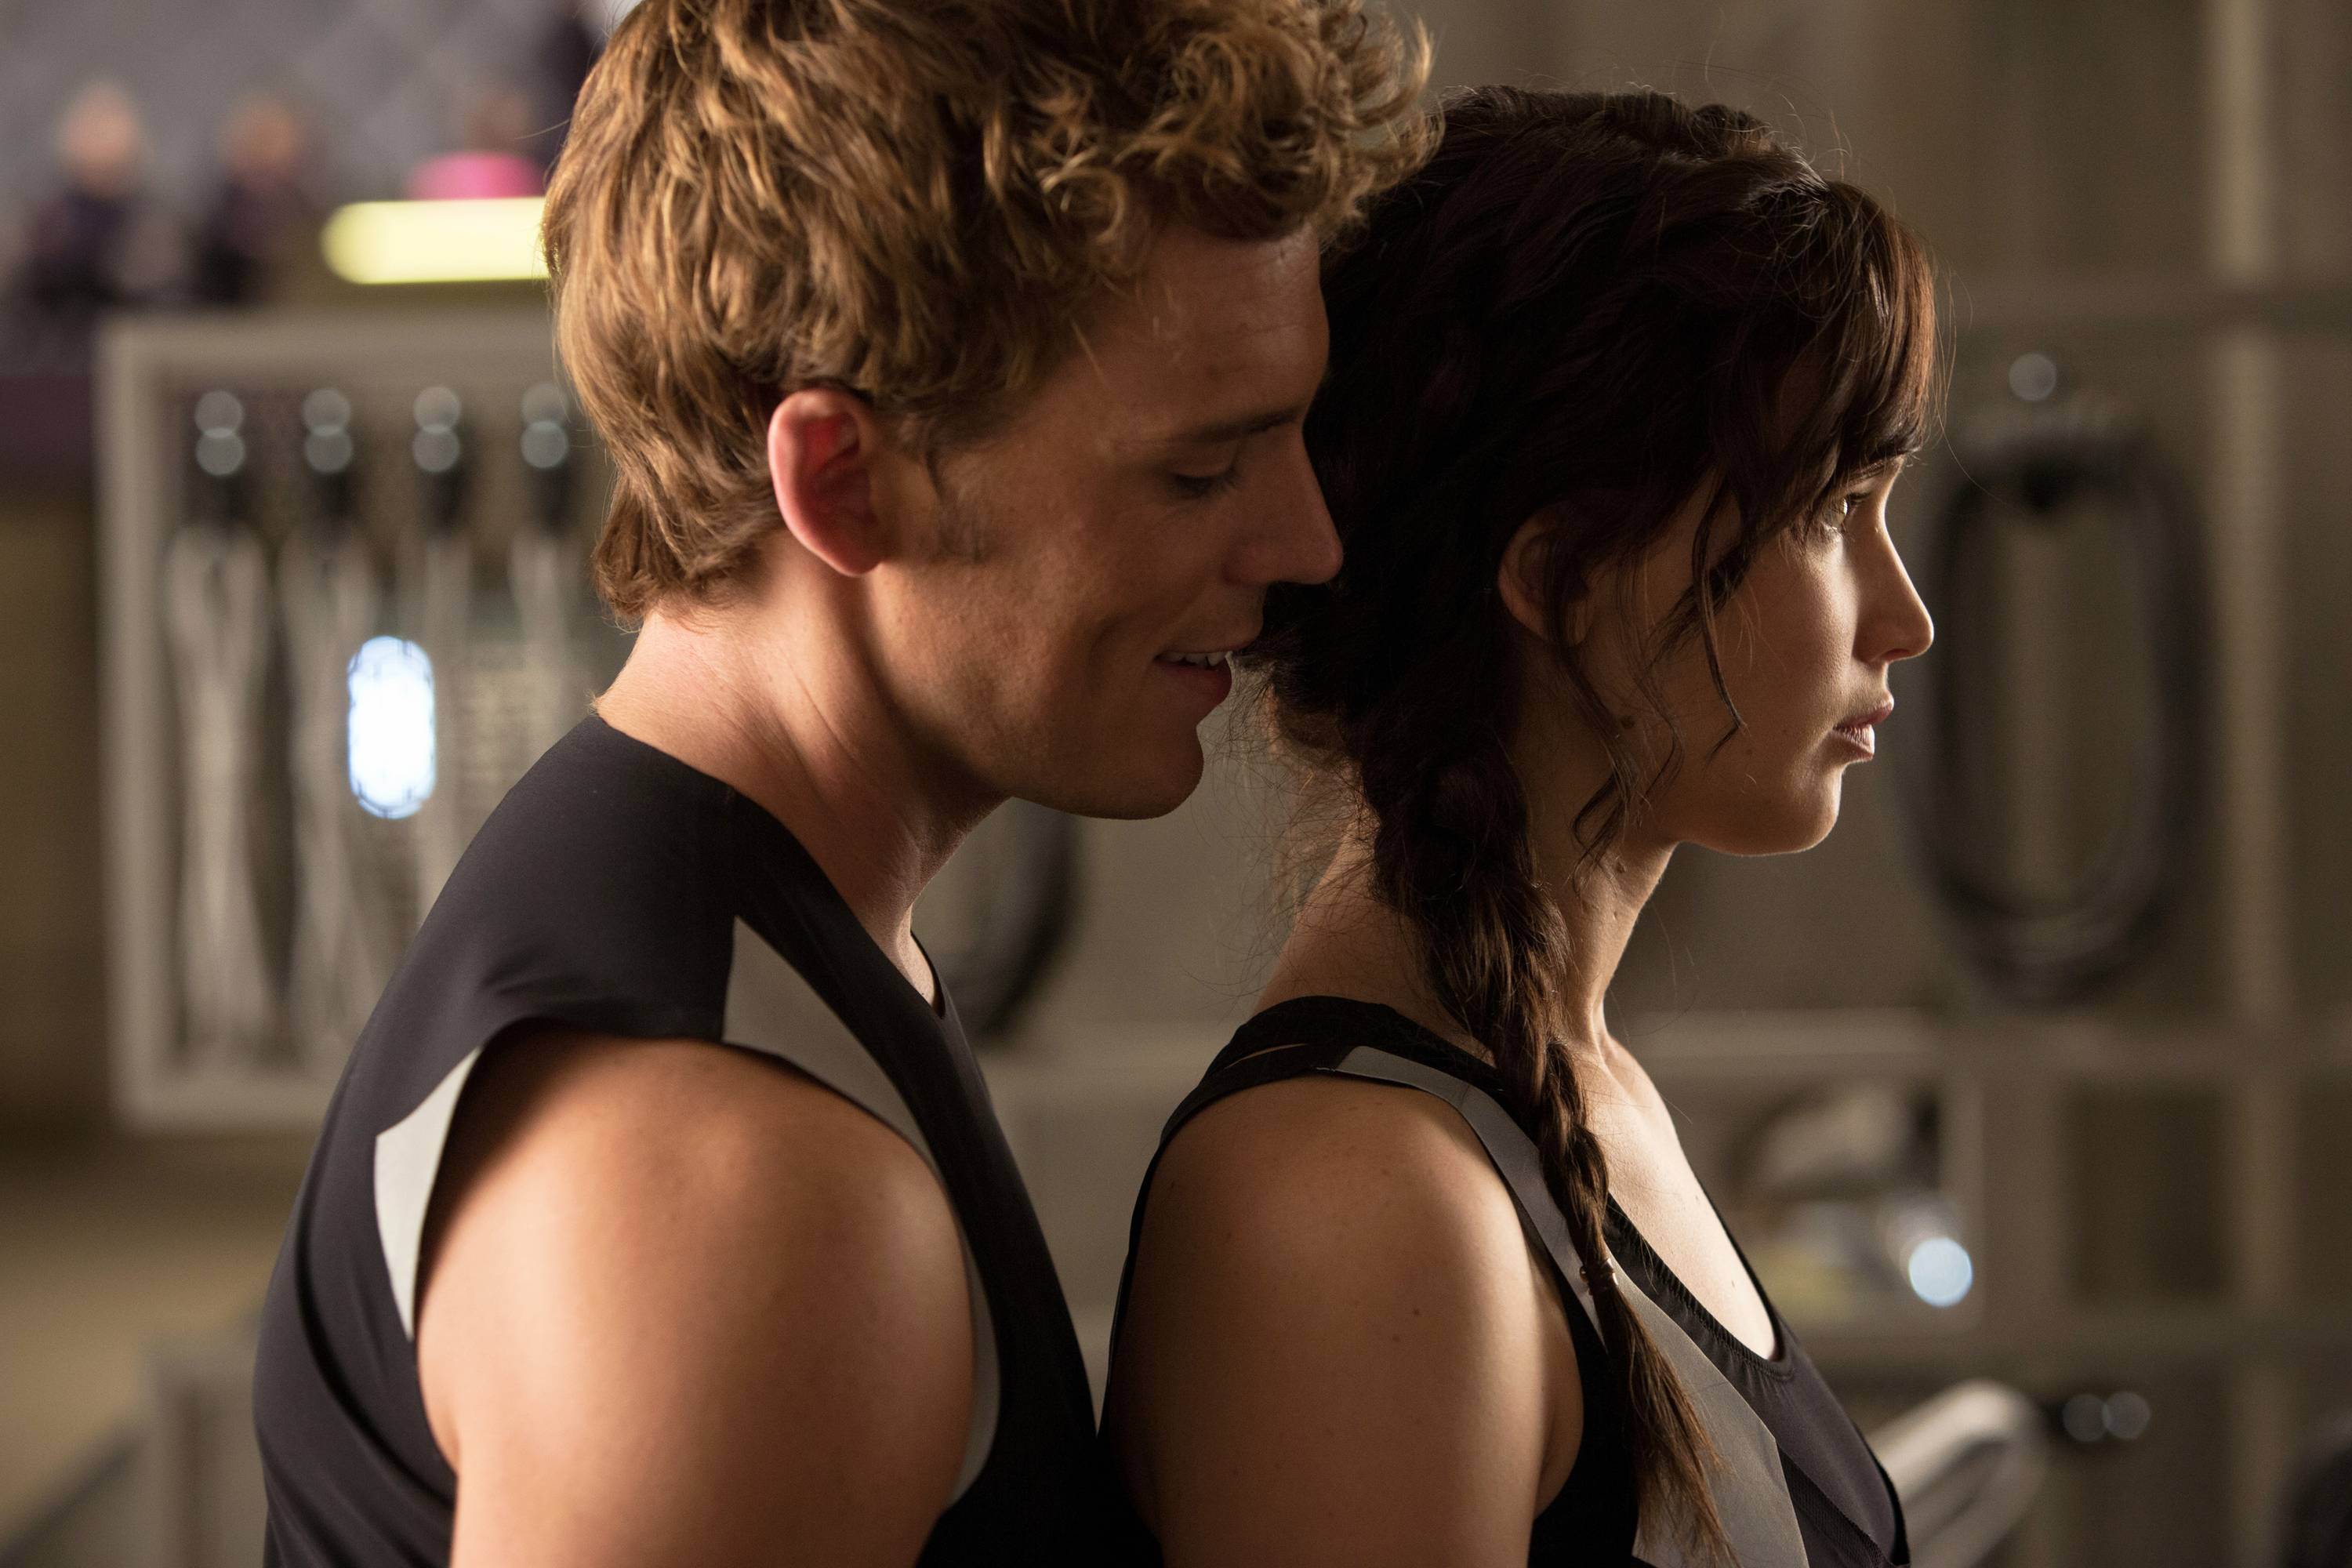 The hunger games movie catching fire stills hq